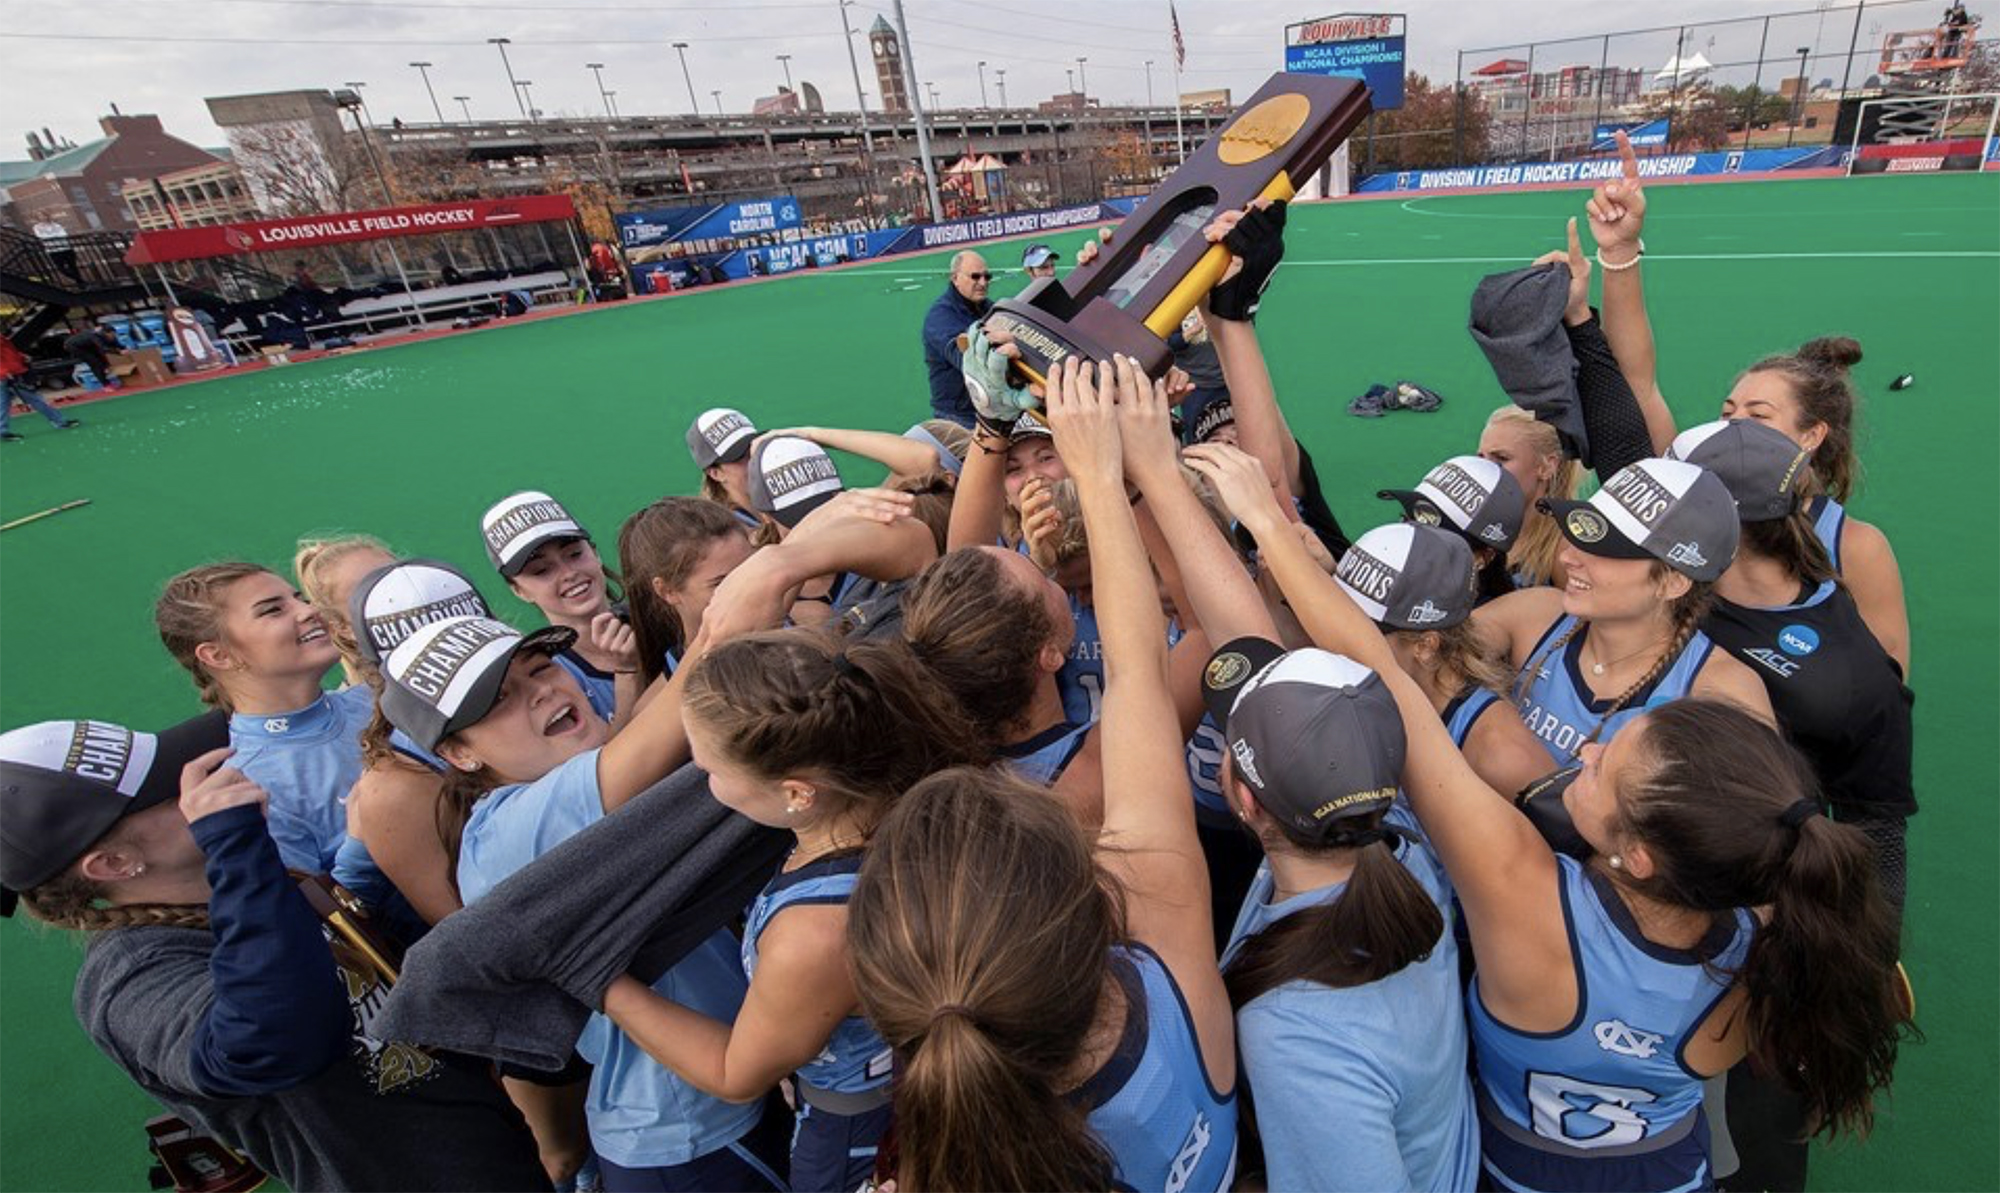 Field Hockey celebration